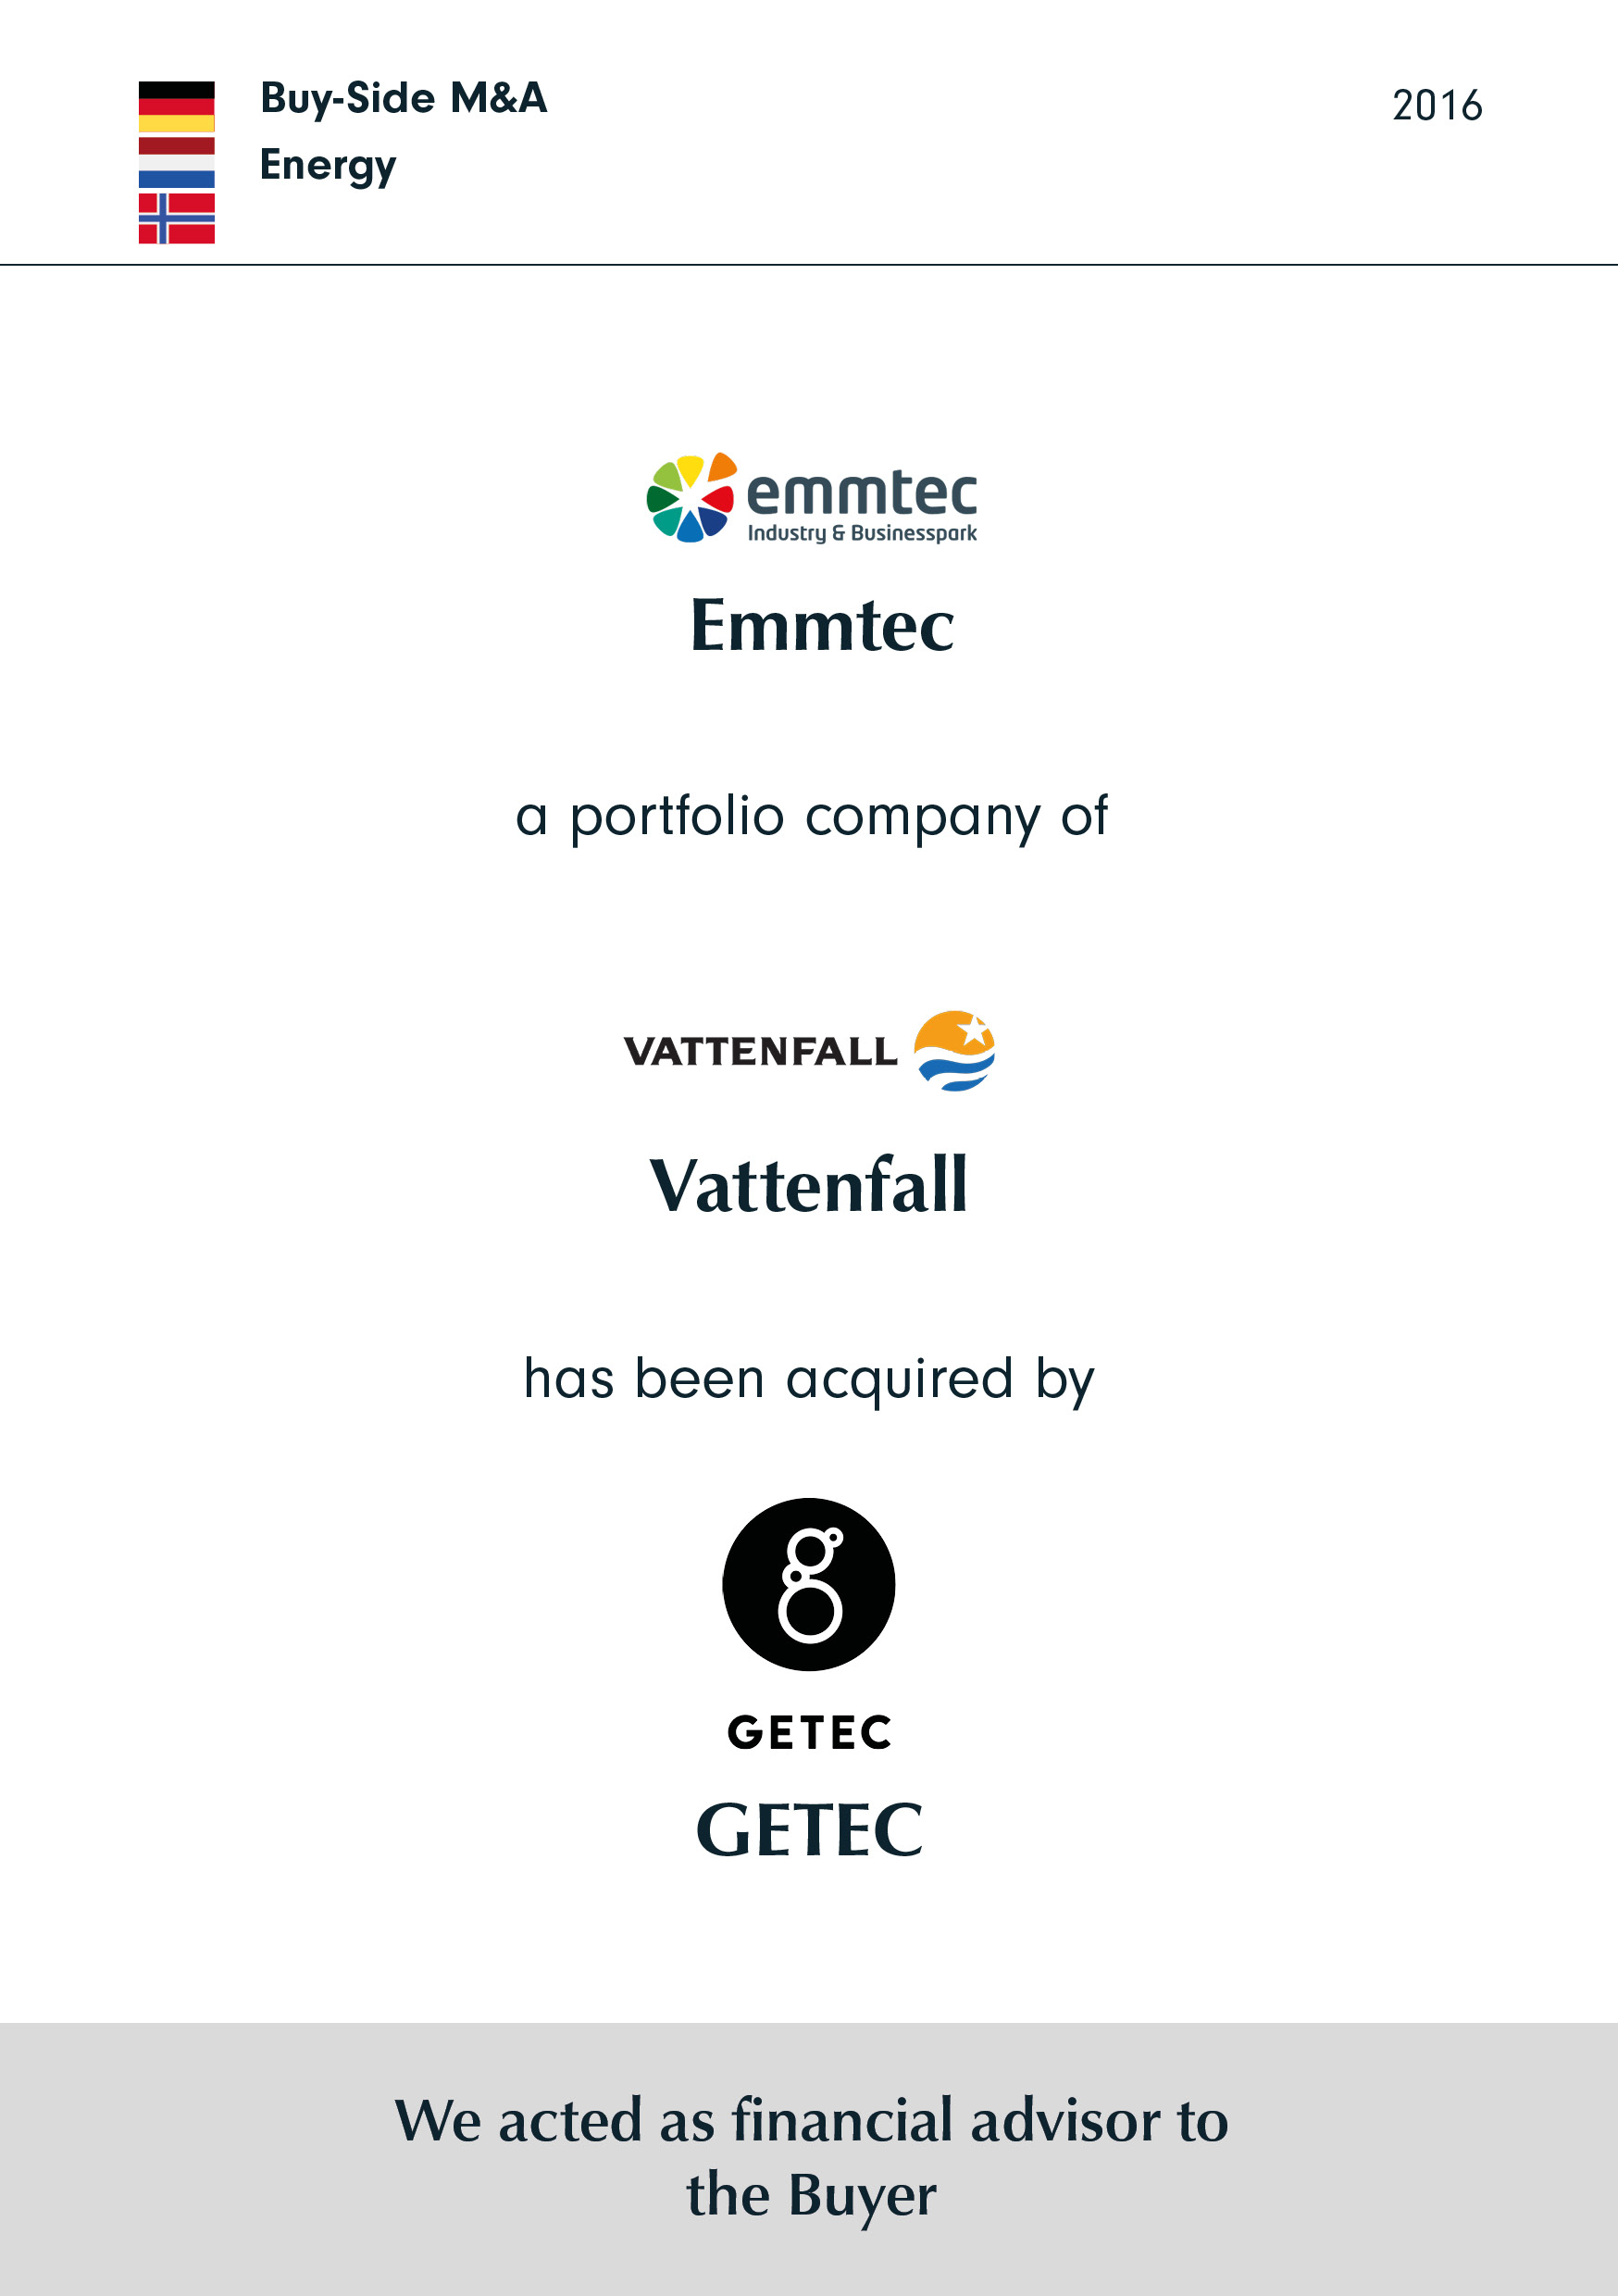 emmtec a portfolio company of VATTENFALL has been acquired by GETEC